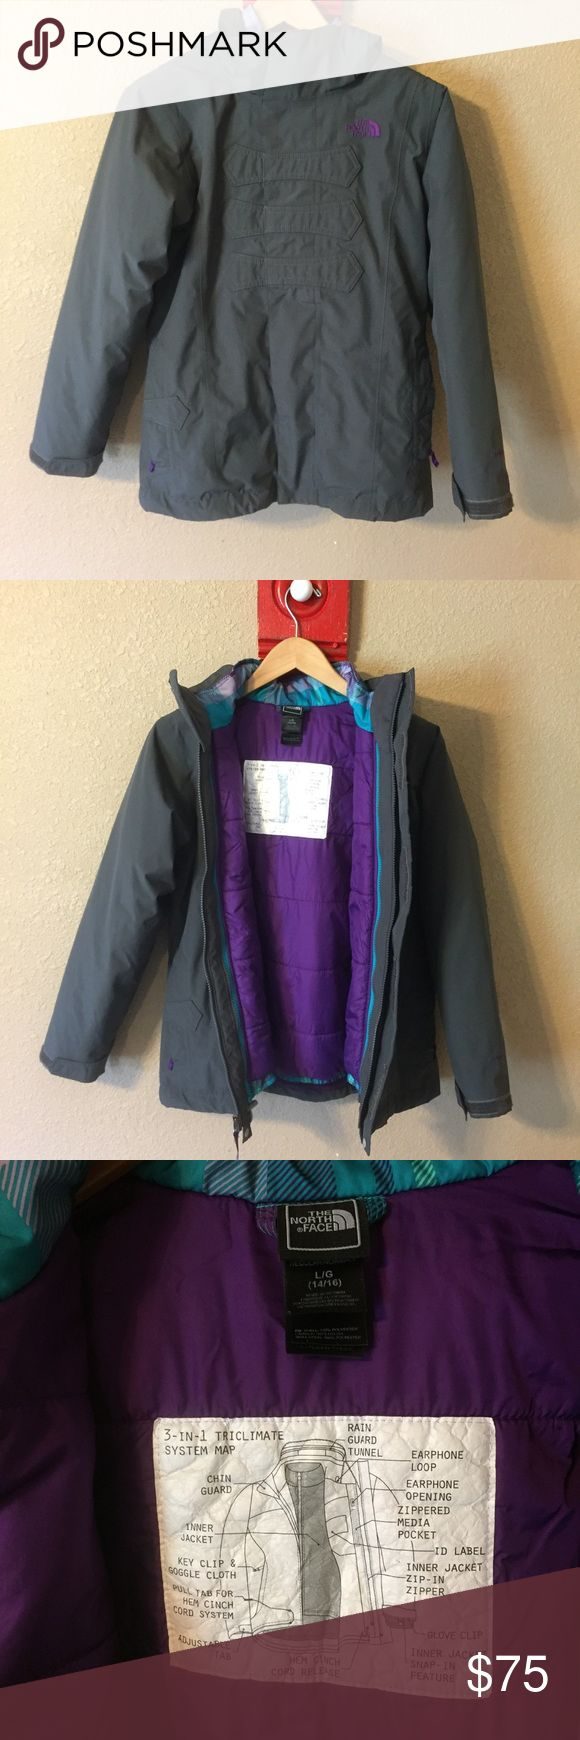 Girls North Face 3in1 Triclimate A coat/jacket/heavier coat all in one. Wear them together for a full hooded coat or separate for a lighter hooded jacket or the puffer packet for a lighter coat. Great coat, my daughter just didn't care for it. North Face Jackets & Coats